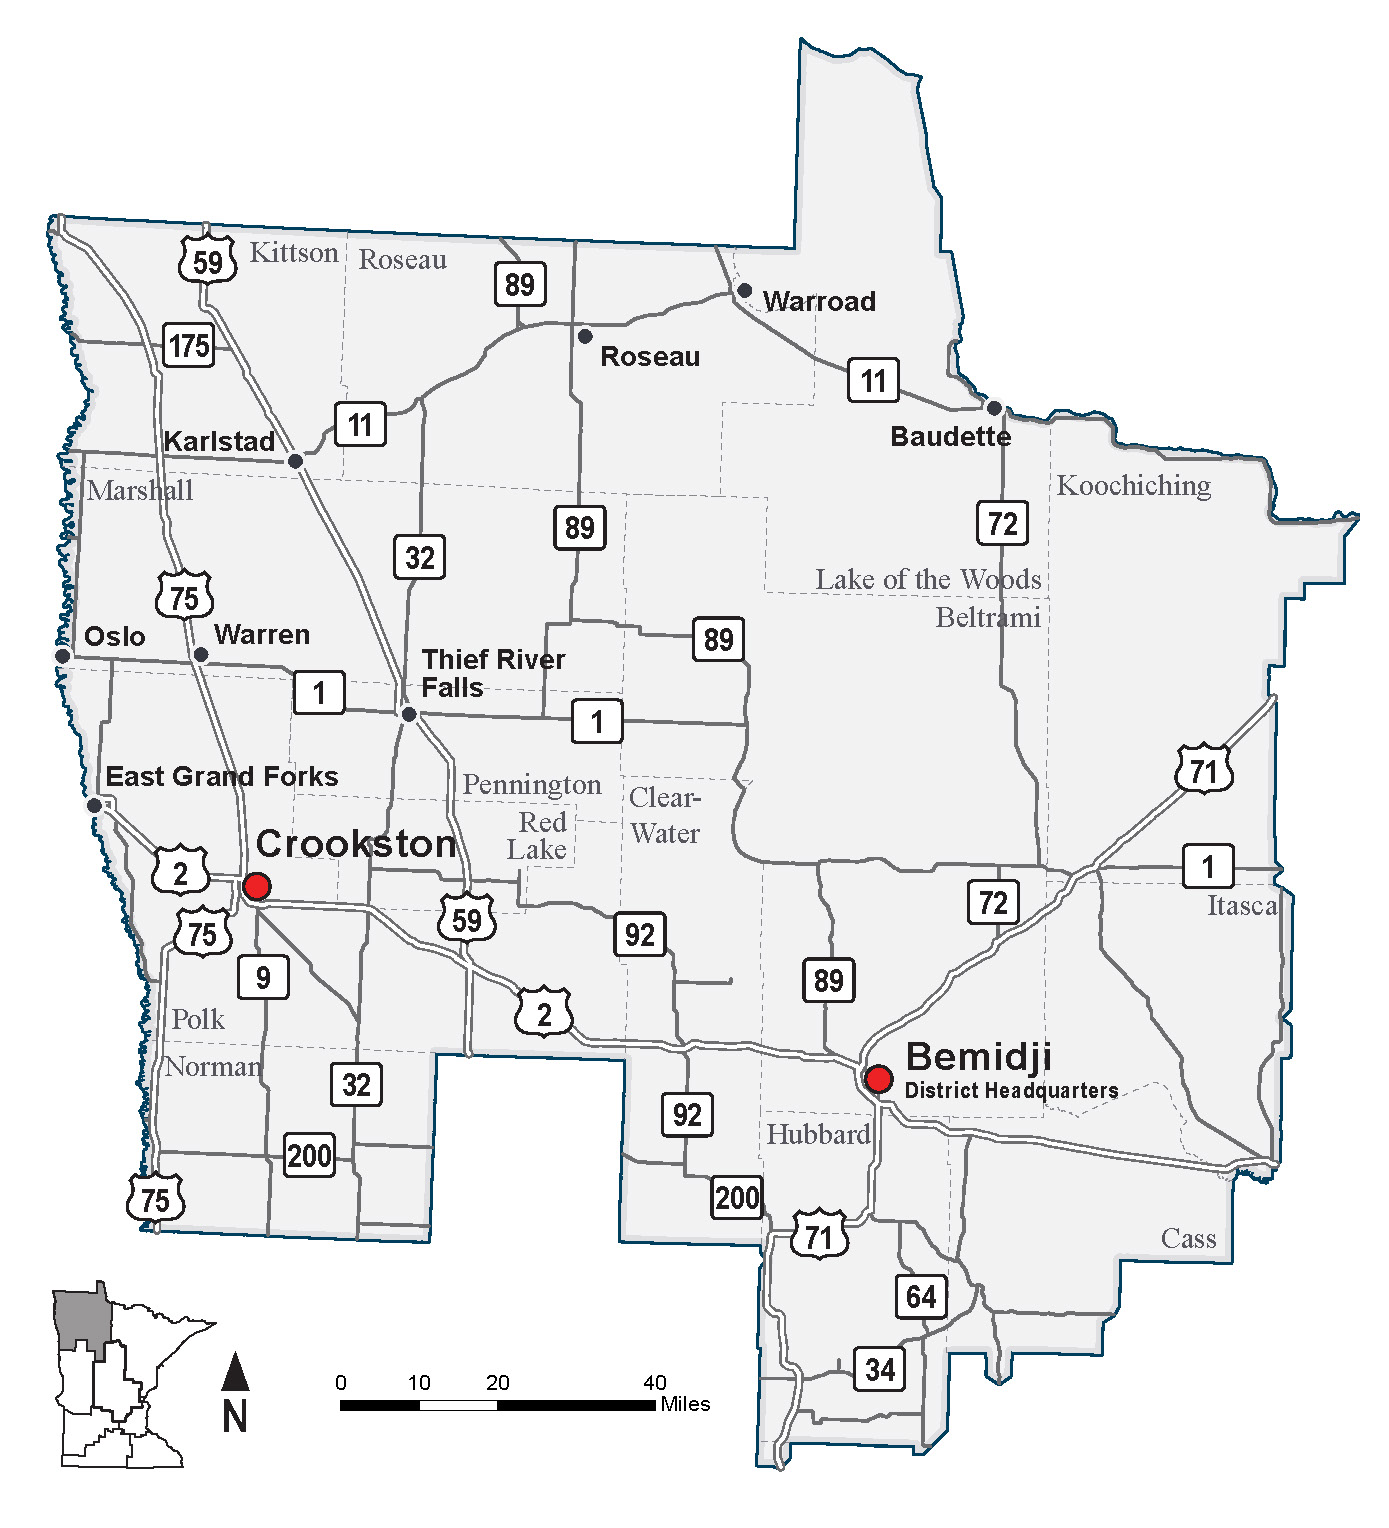 map of mndot district  covering northwest minnesota. northwest minnesota district